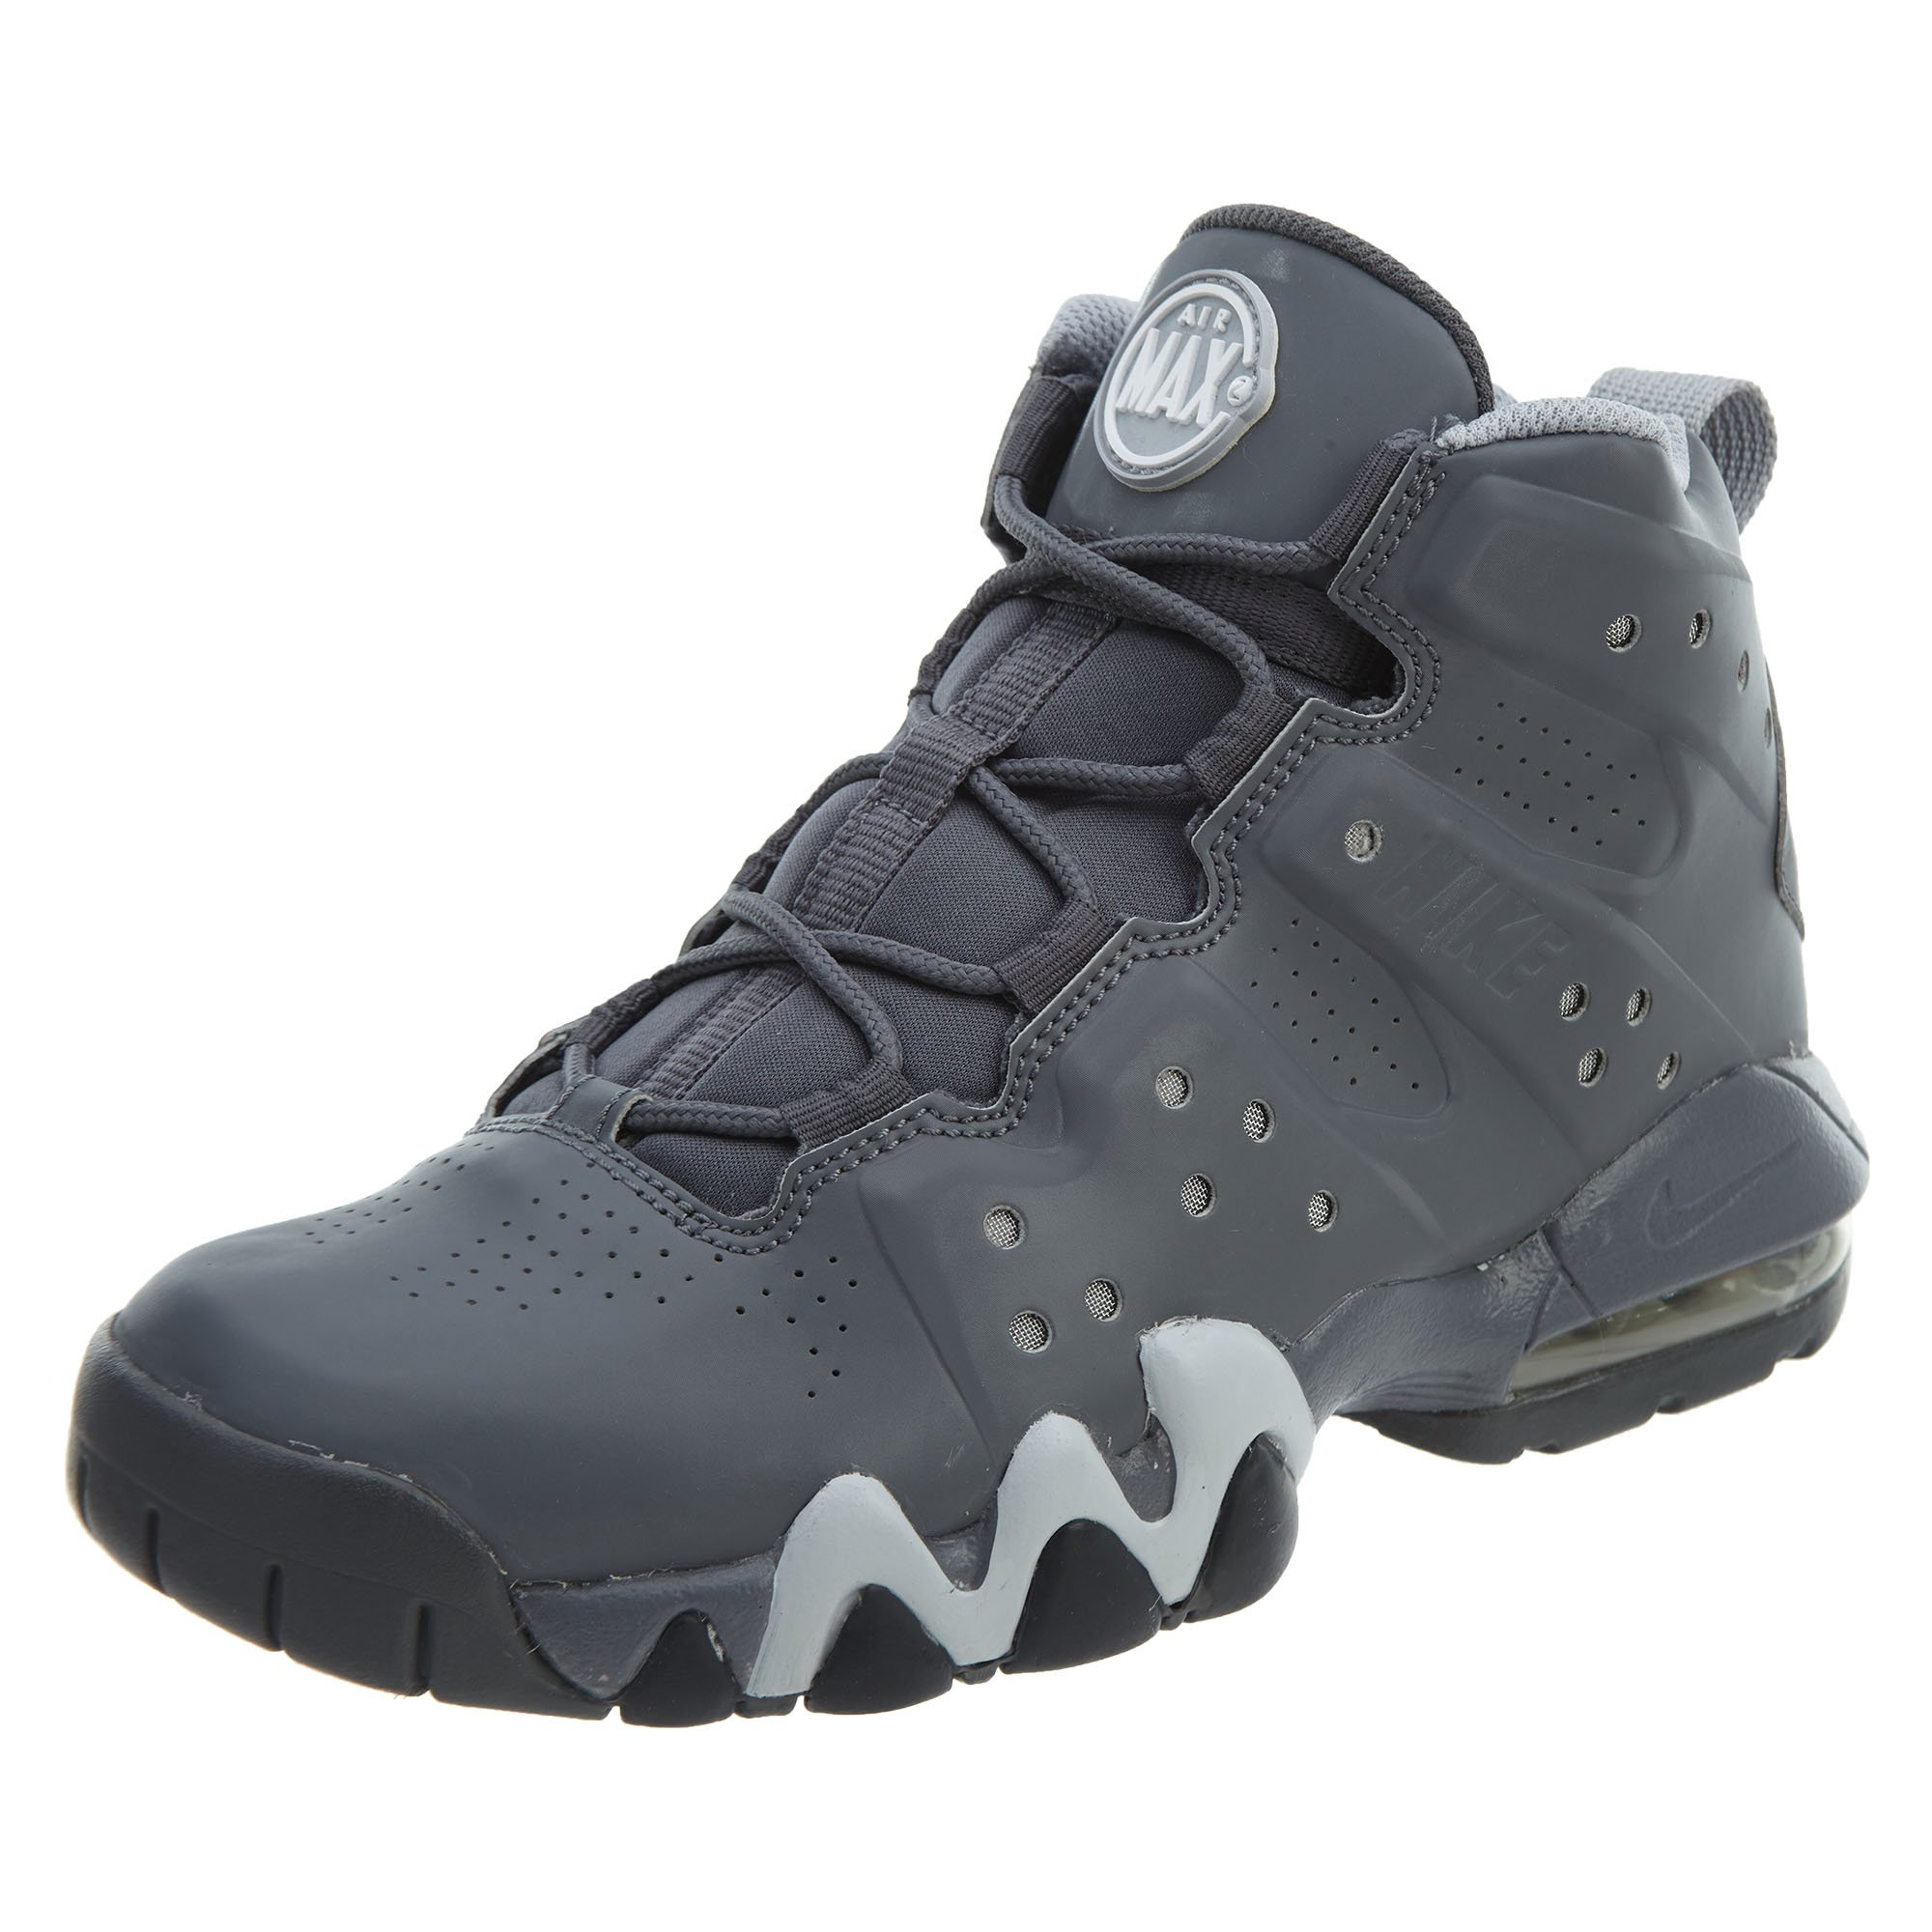 sports shoes 78409 ae4a8 Galleon - NIKE Air Max Barkley (GS) Boys Basketball Shoes 488245-002 Dark  Grey 5 M US